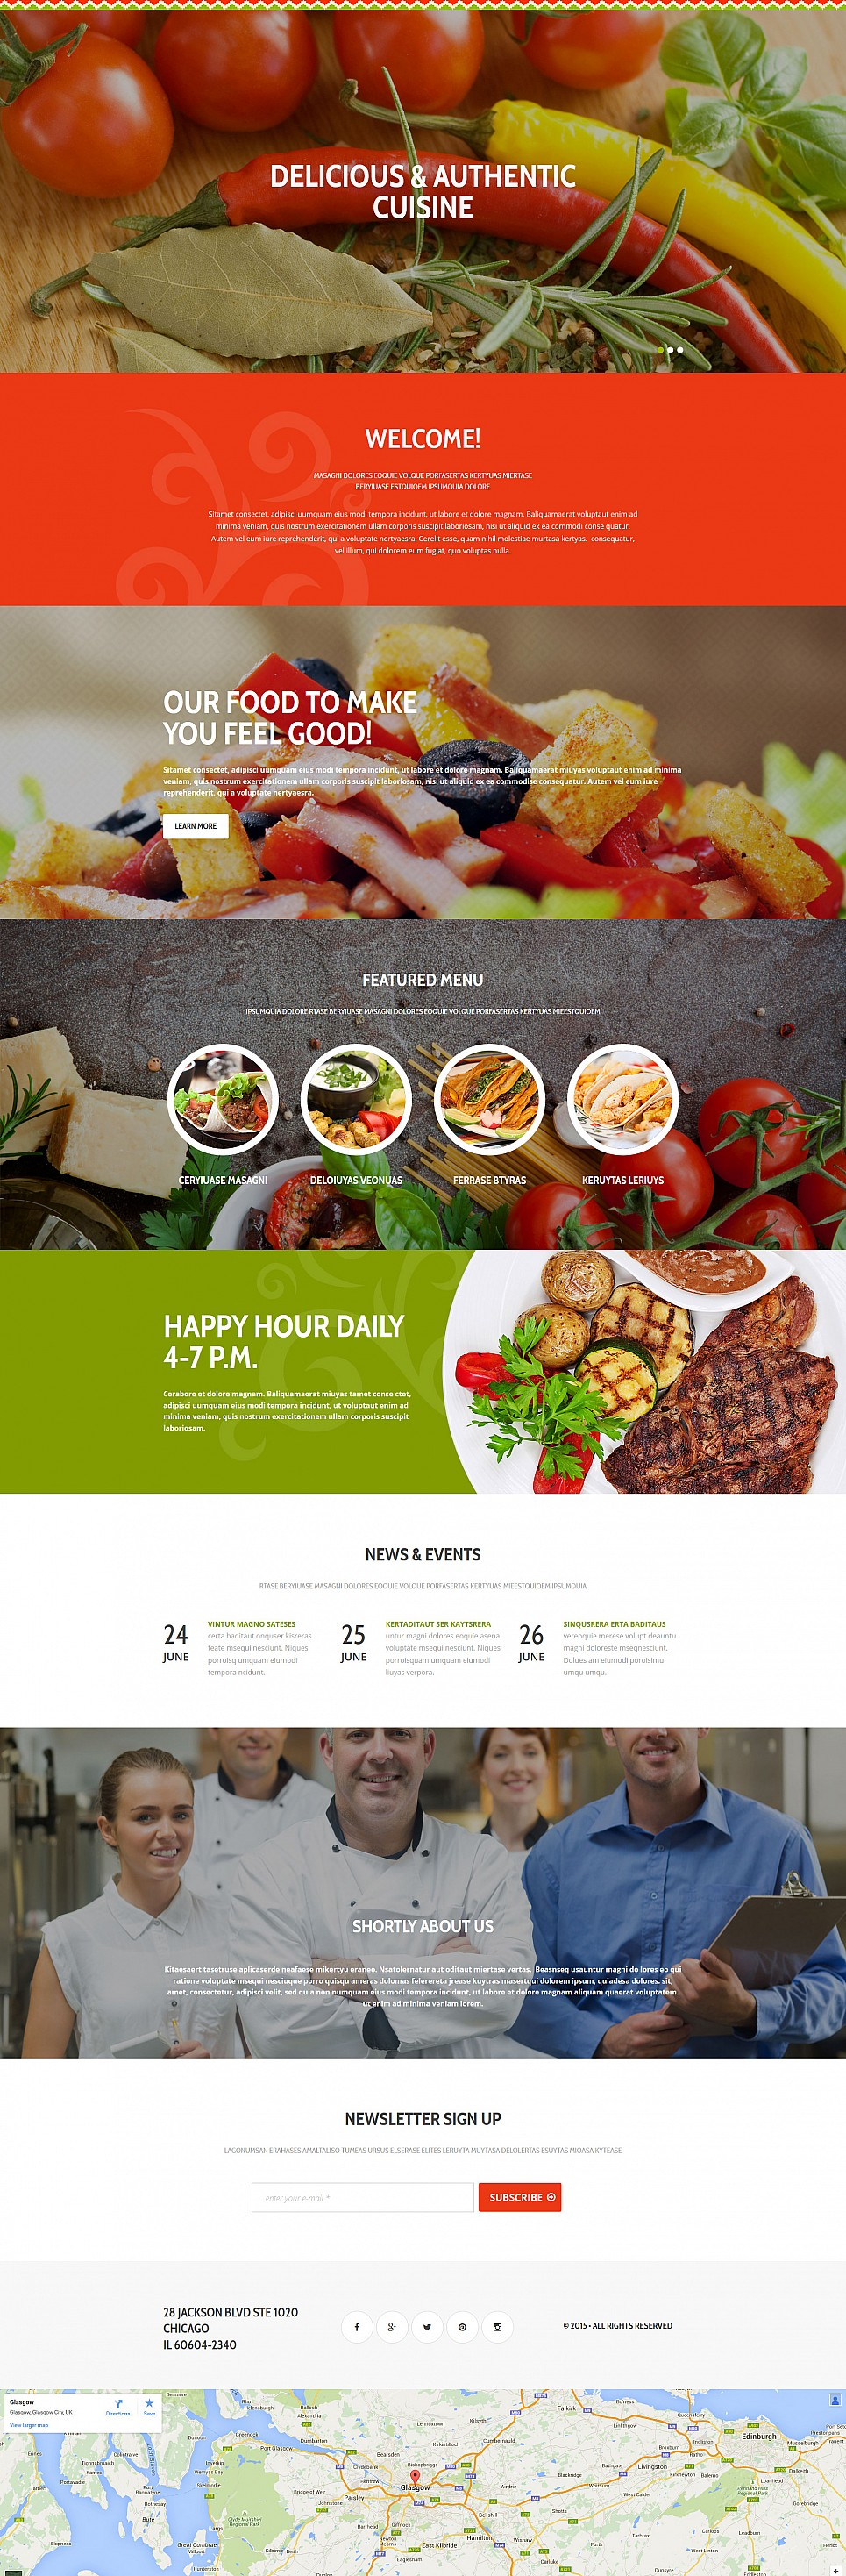 Single-Page Theme for Restaurant Business - image